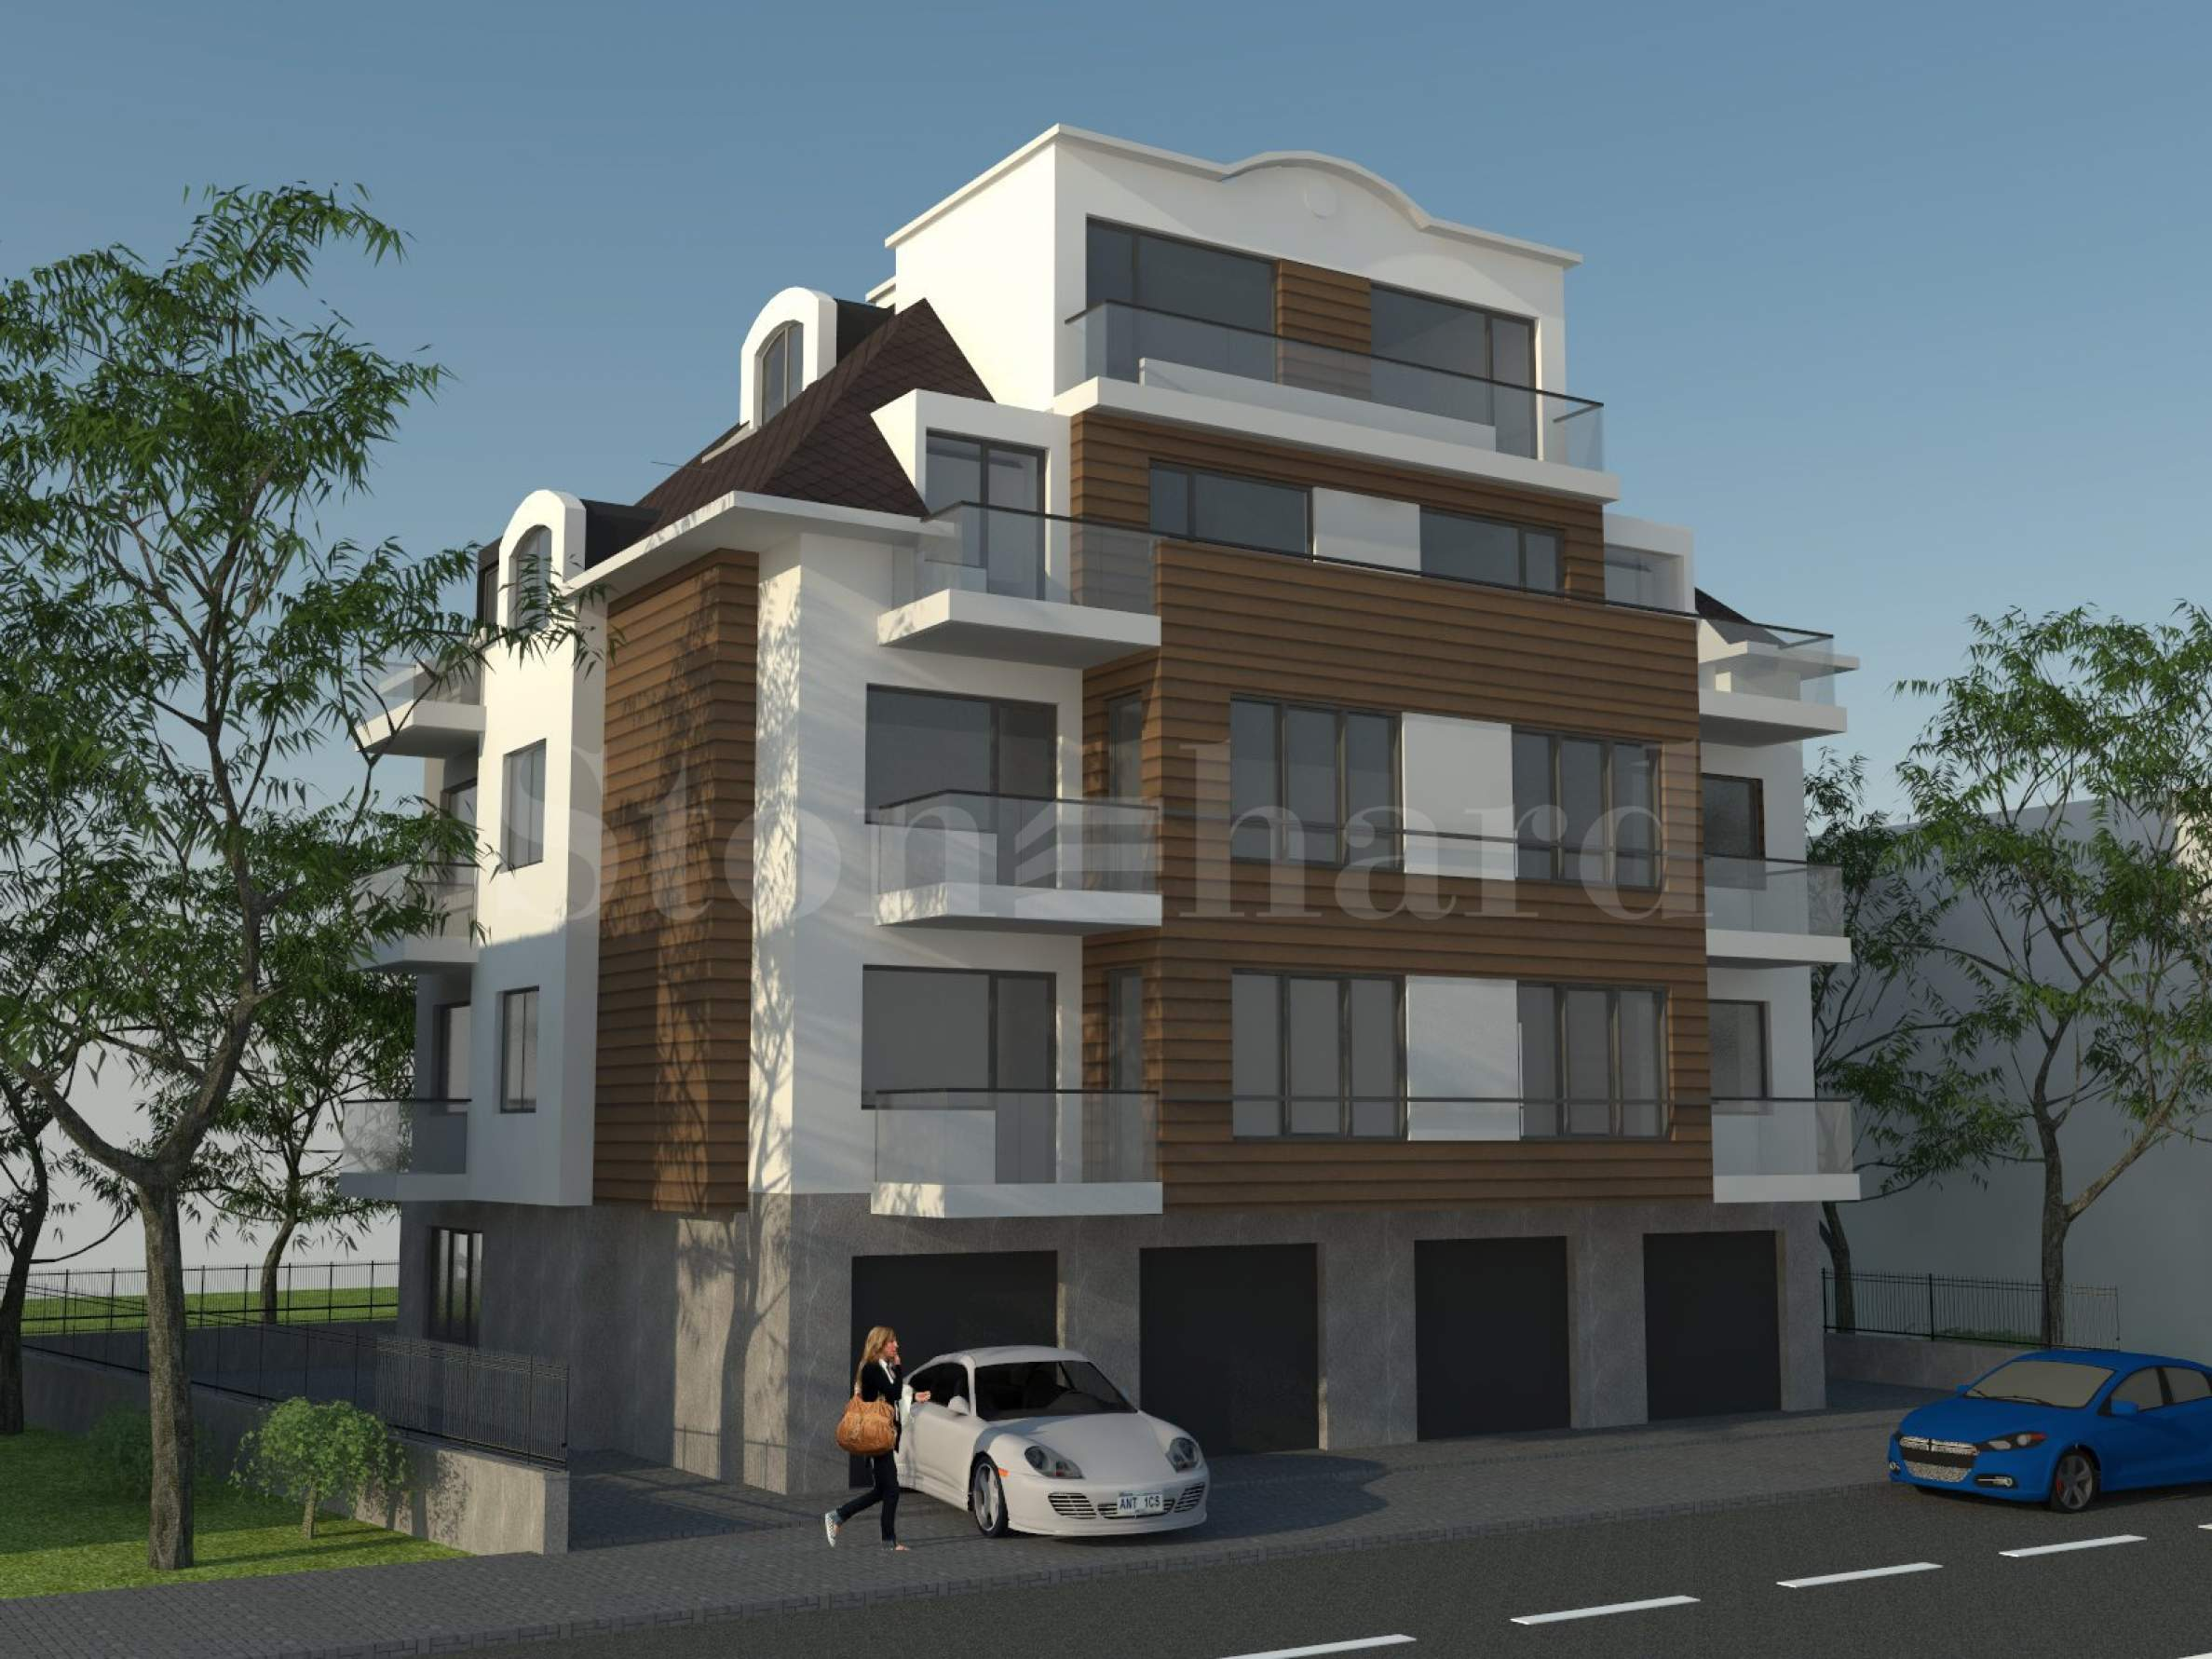 Stylish apartment building on Cherni Vrah Blvd, Krastova Vada District1 - Stonehard